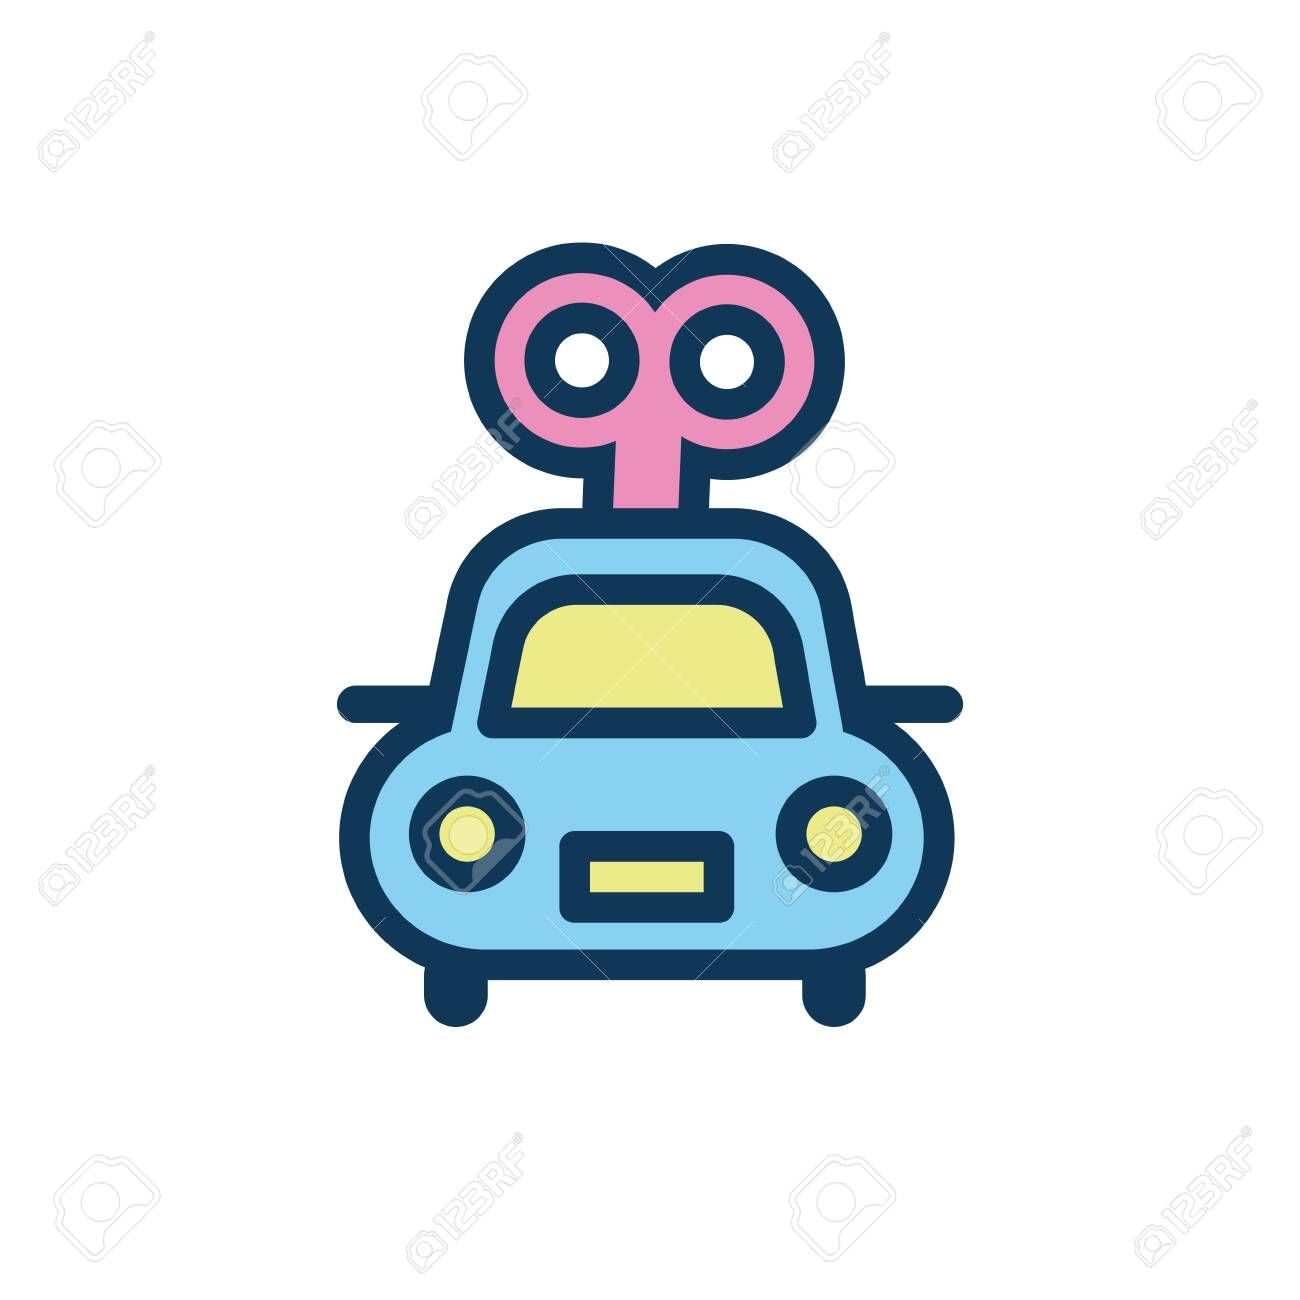 Car Child Toy Fill Style Icon Vector Illustration Design Ad Toy Fill Car C Vector Illustration Design Website Design Inspiration Illustration Design